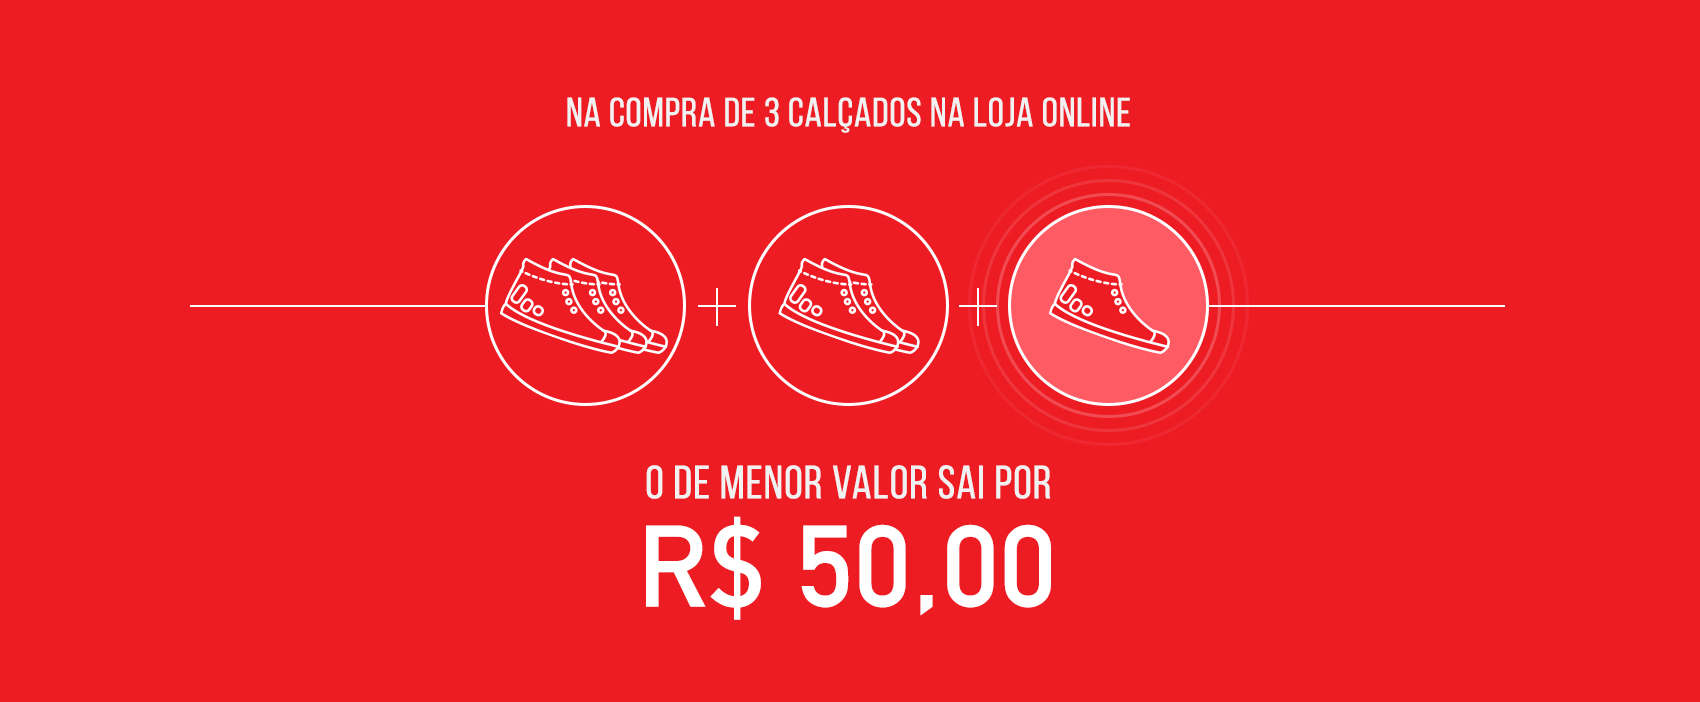 Compre 2 Leve 5 +50